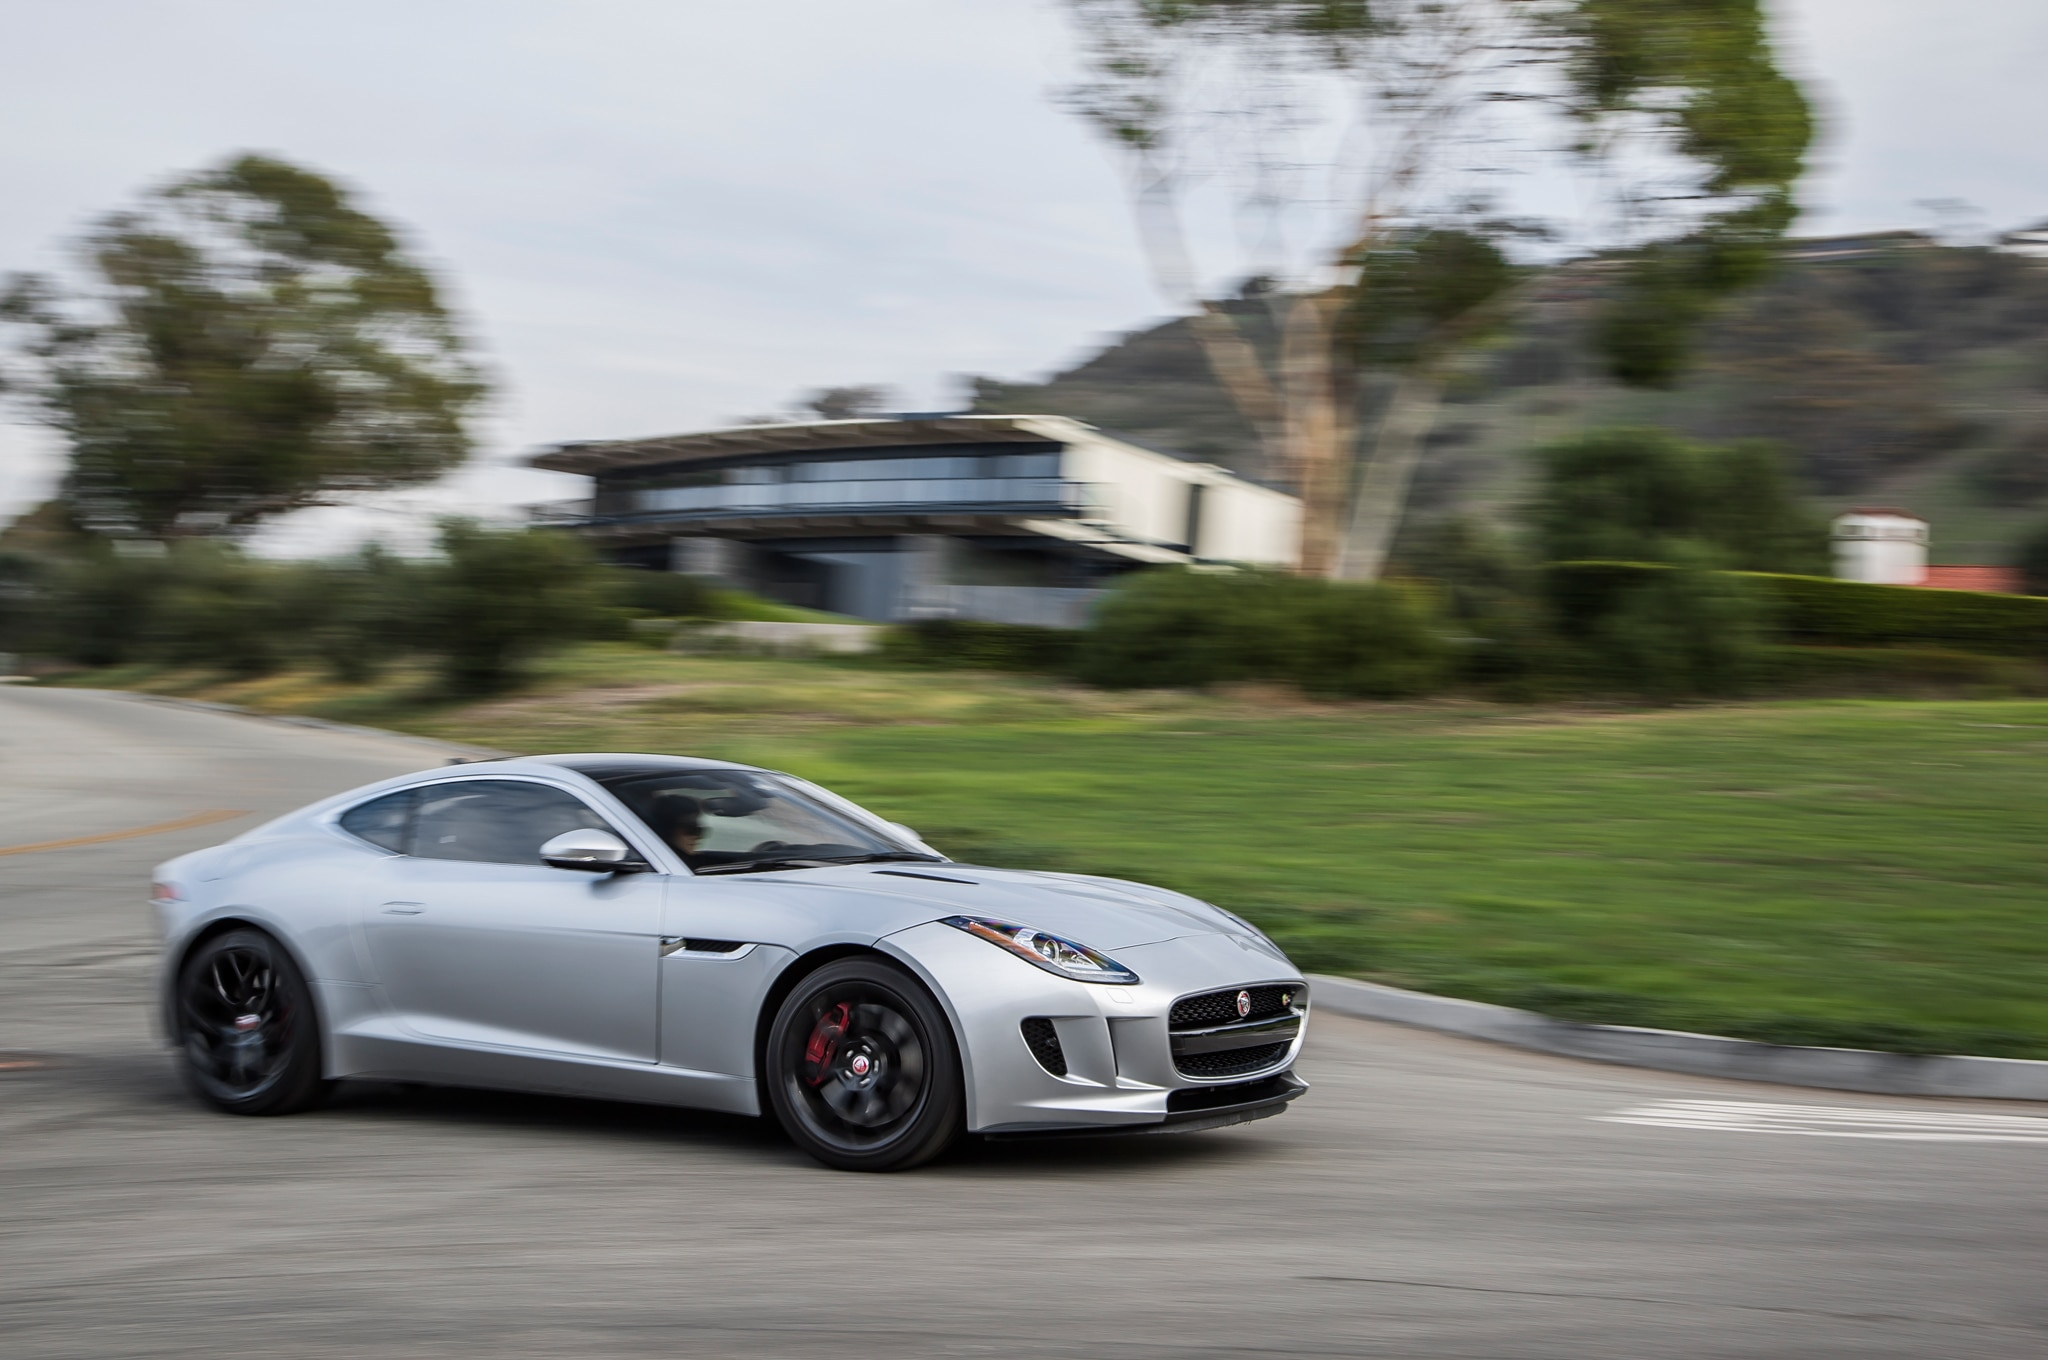 Jaguar FType S Coupe Services Scheduled And Otherwise - 2015 jaguar f type s